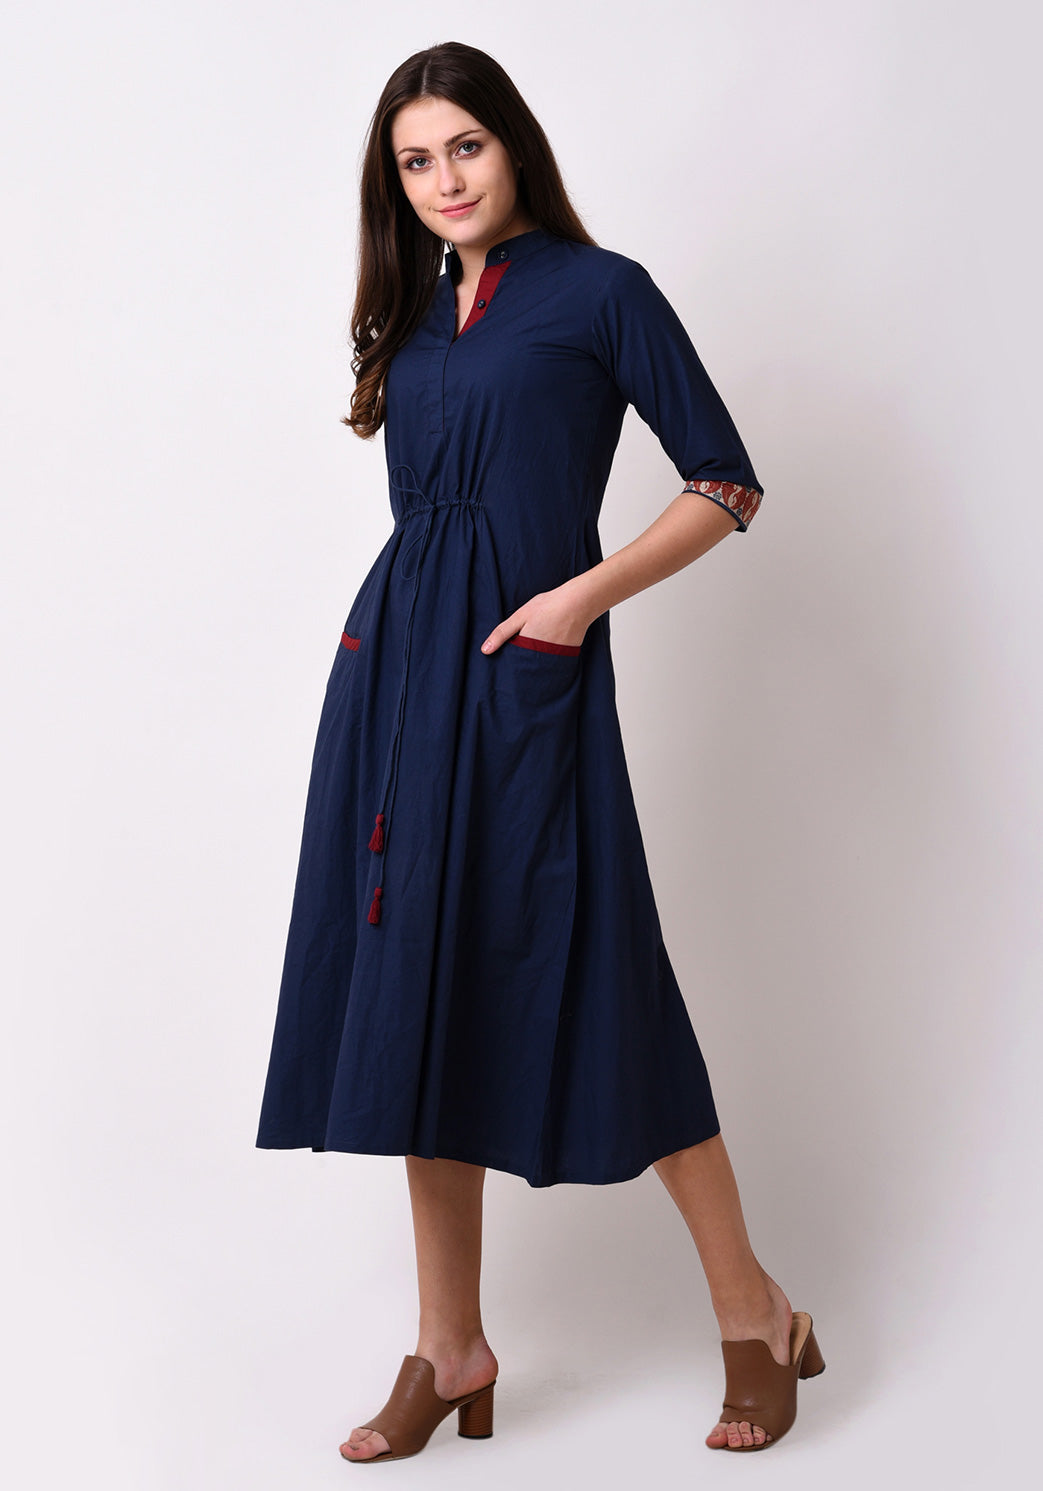 Cotton Front Pocket Dress - Navy Blue